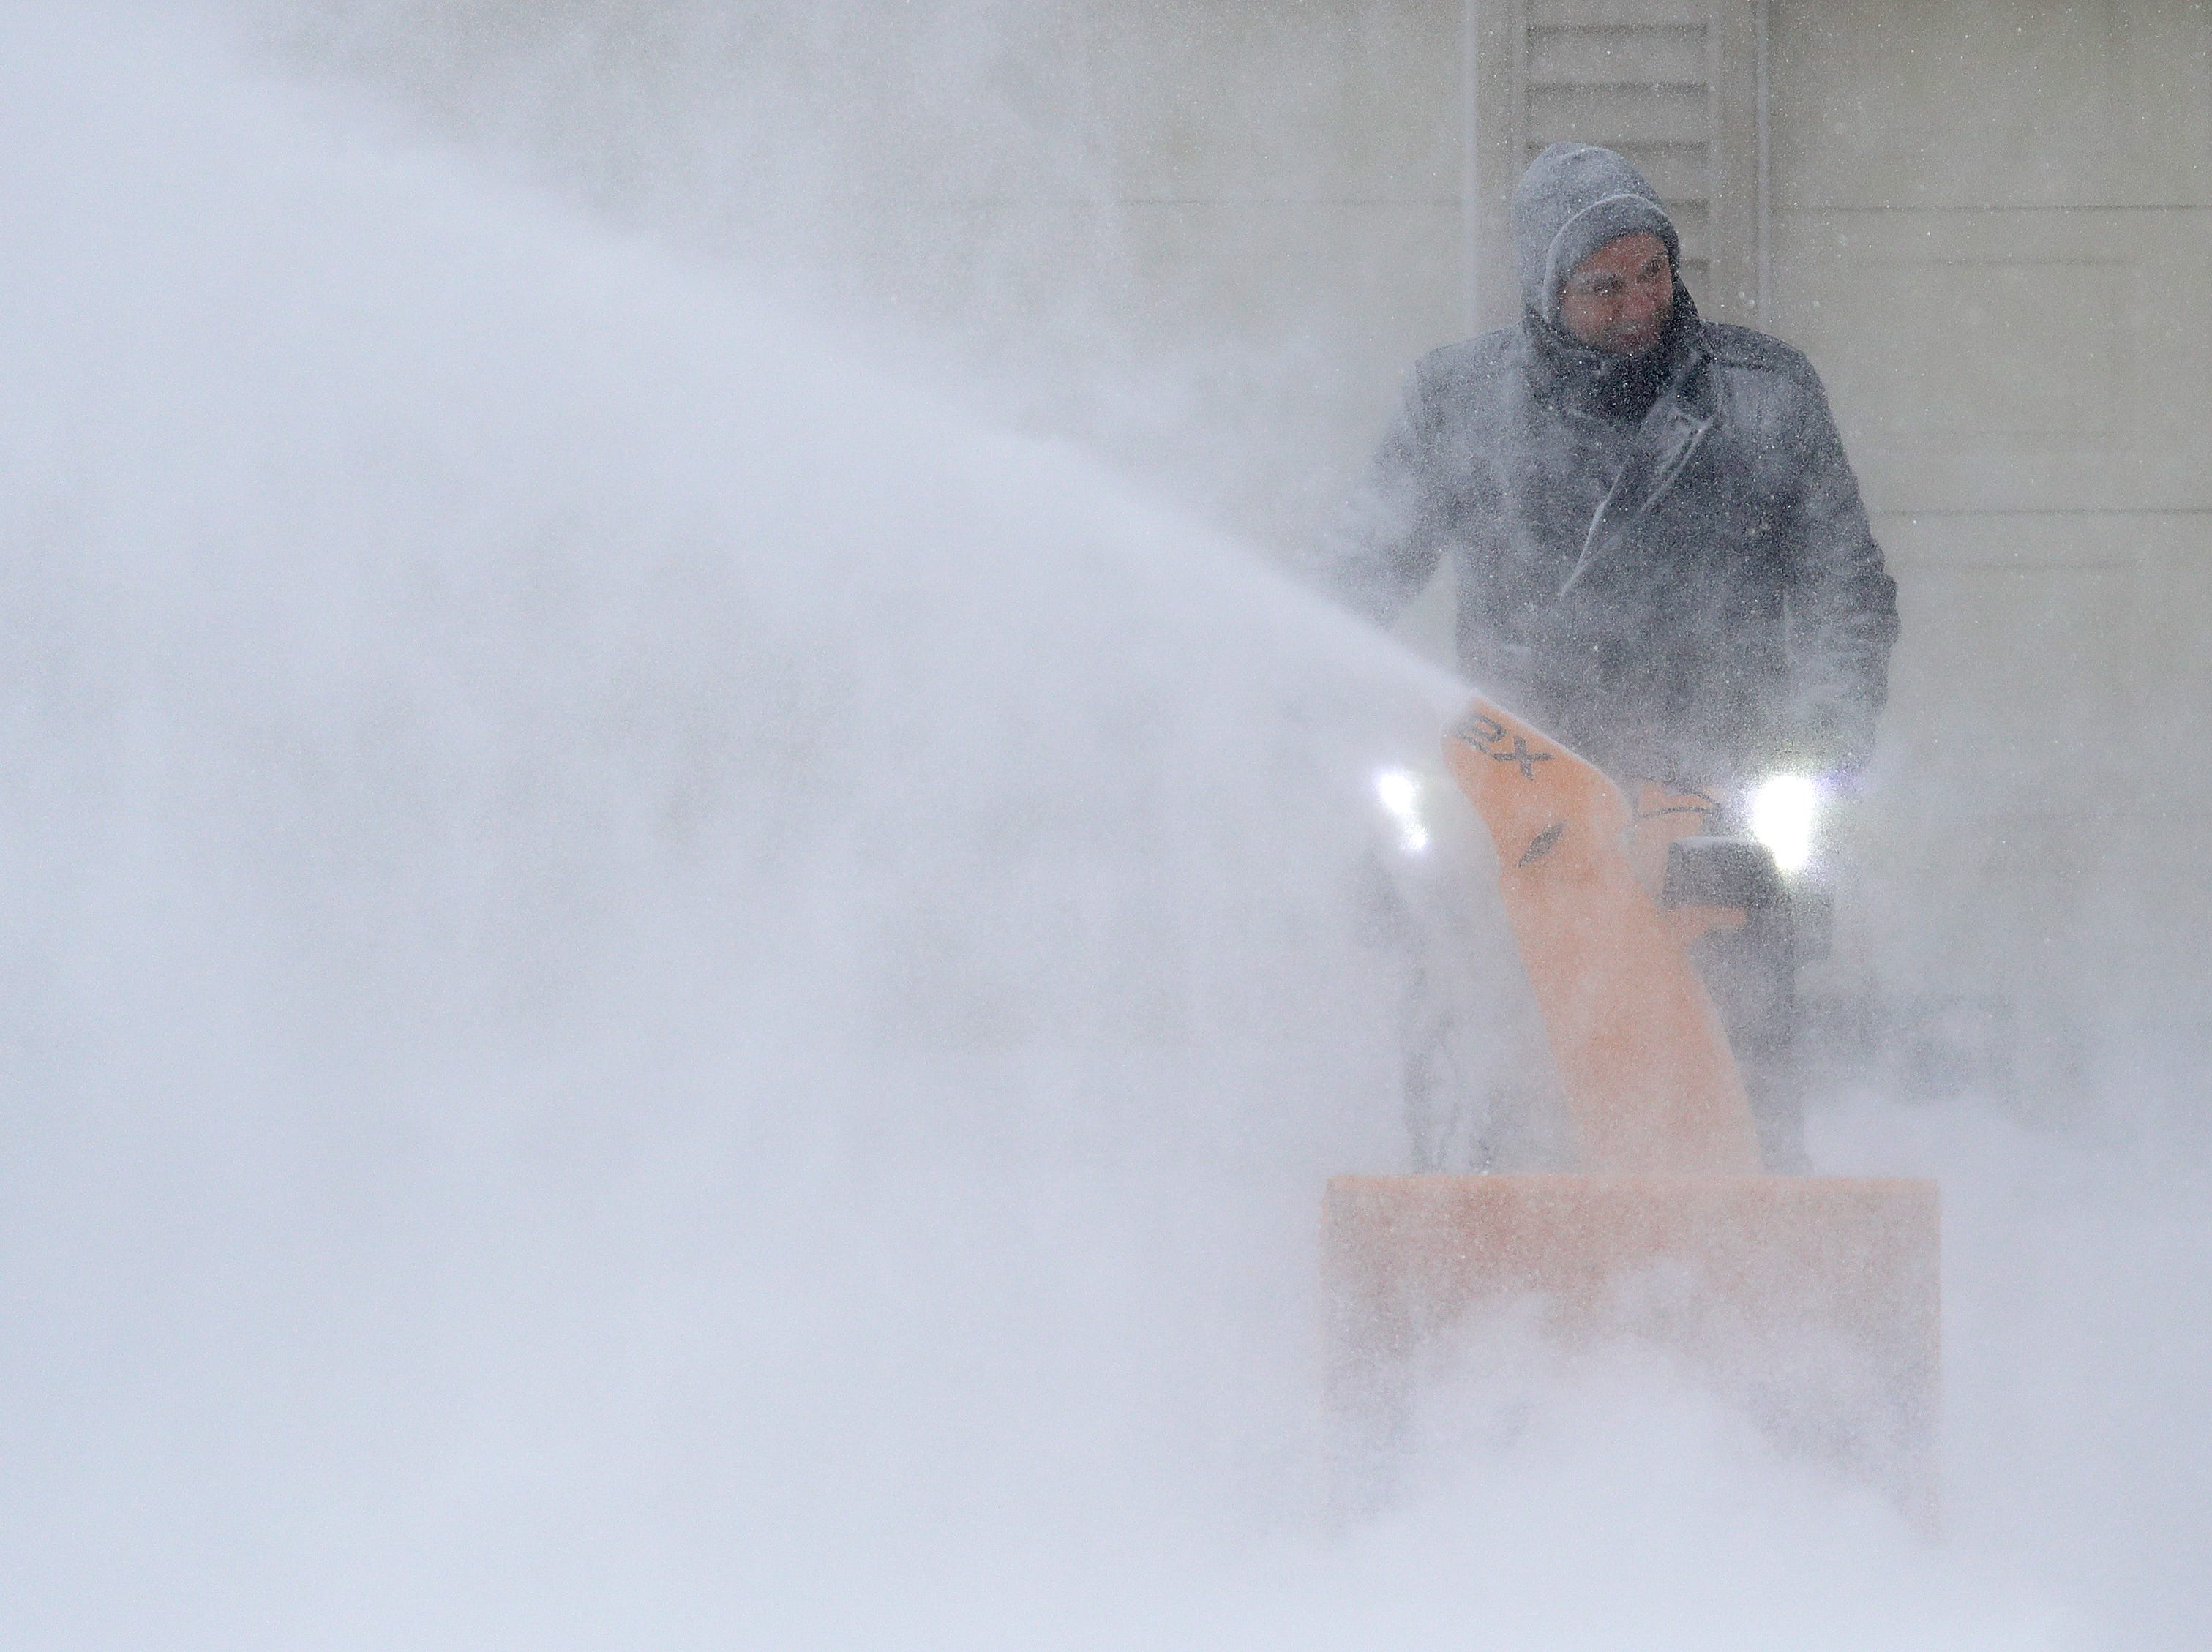 David Liebhard fights windy conditions as he snow blows his driveway during a snowstorm Monday, Jan. 28, 2019, in Appleton, Wis.